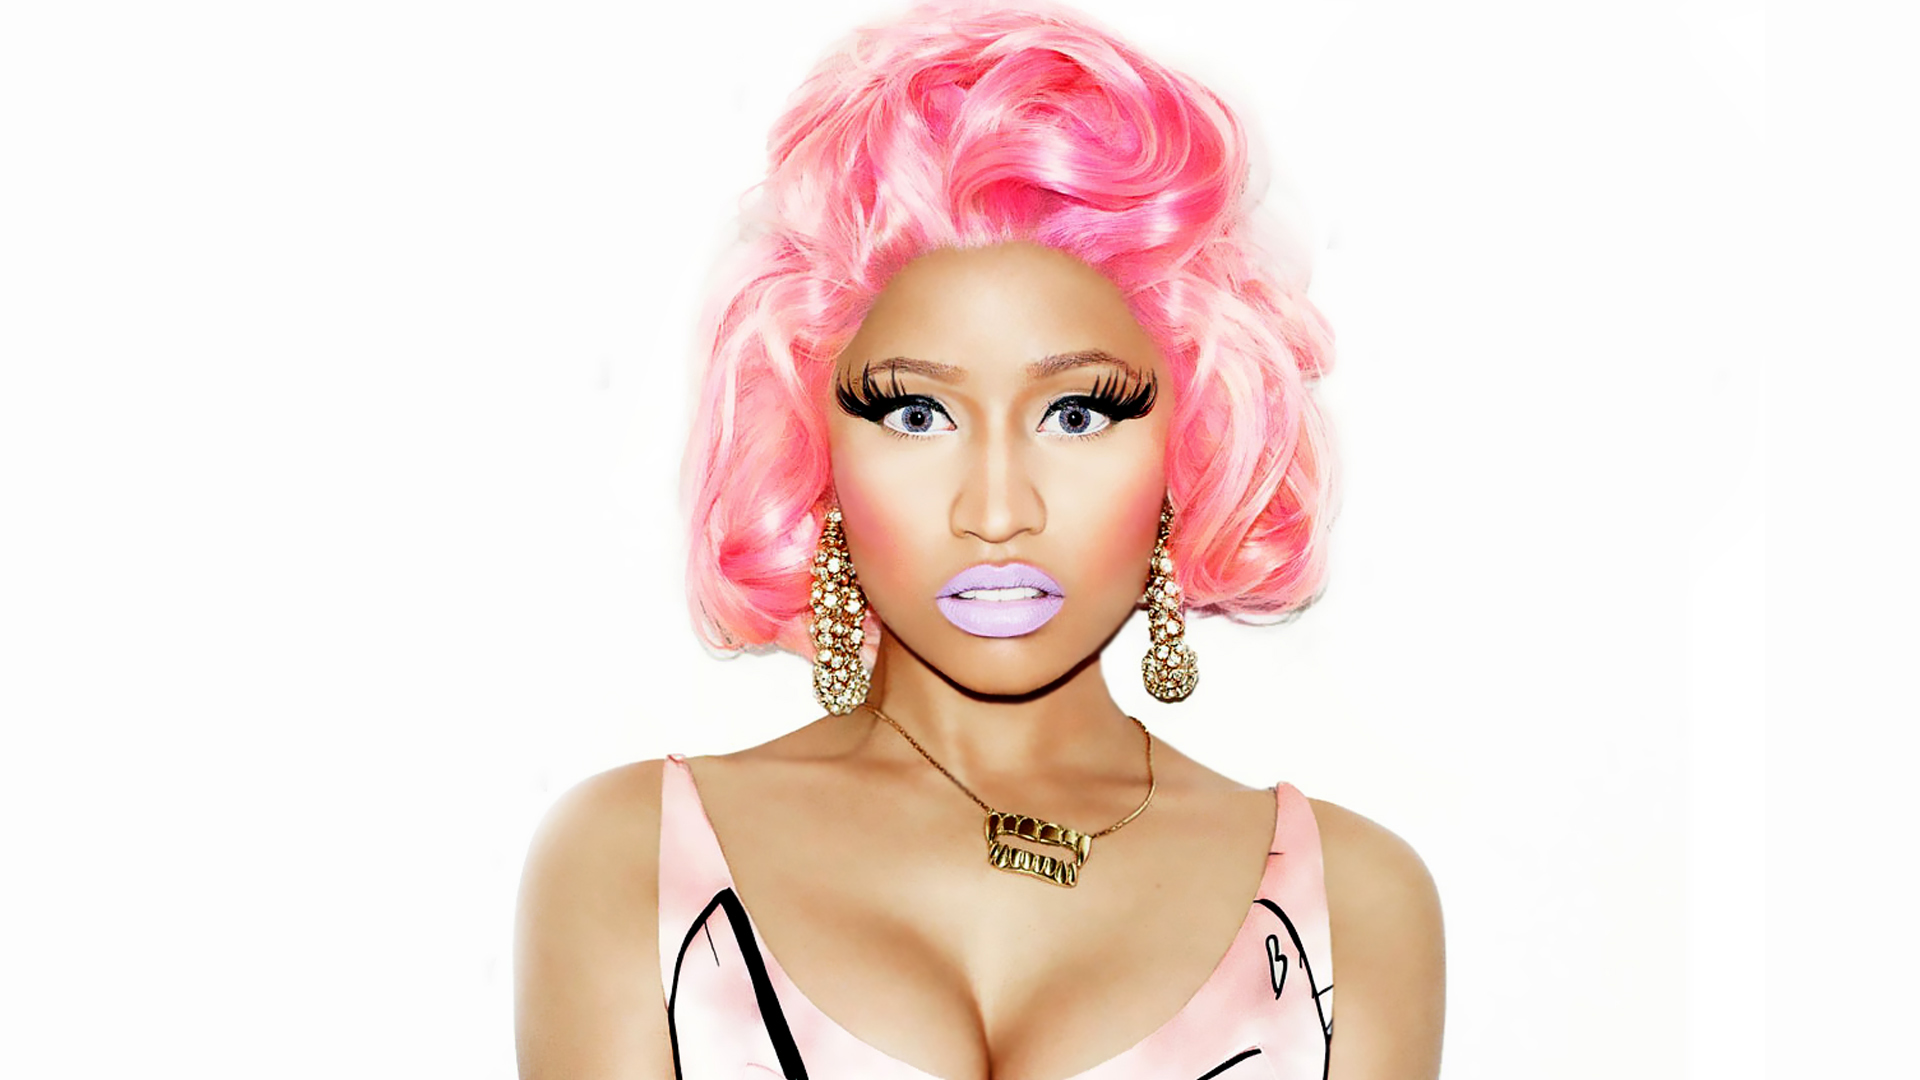 Nicki Minaj Wallpapers High Resolution and Quality Download 1920x1080